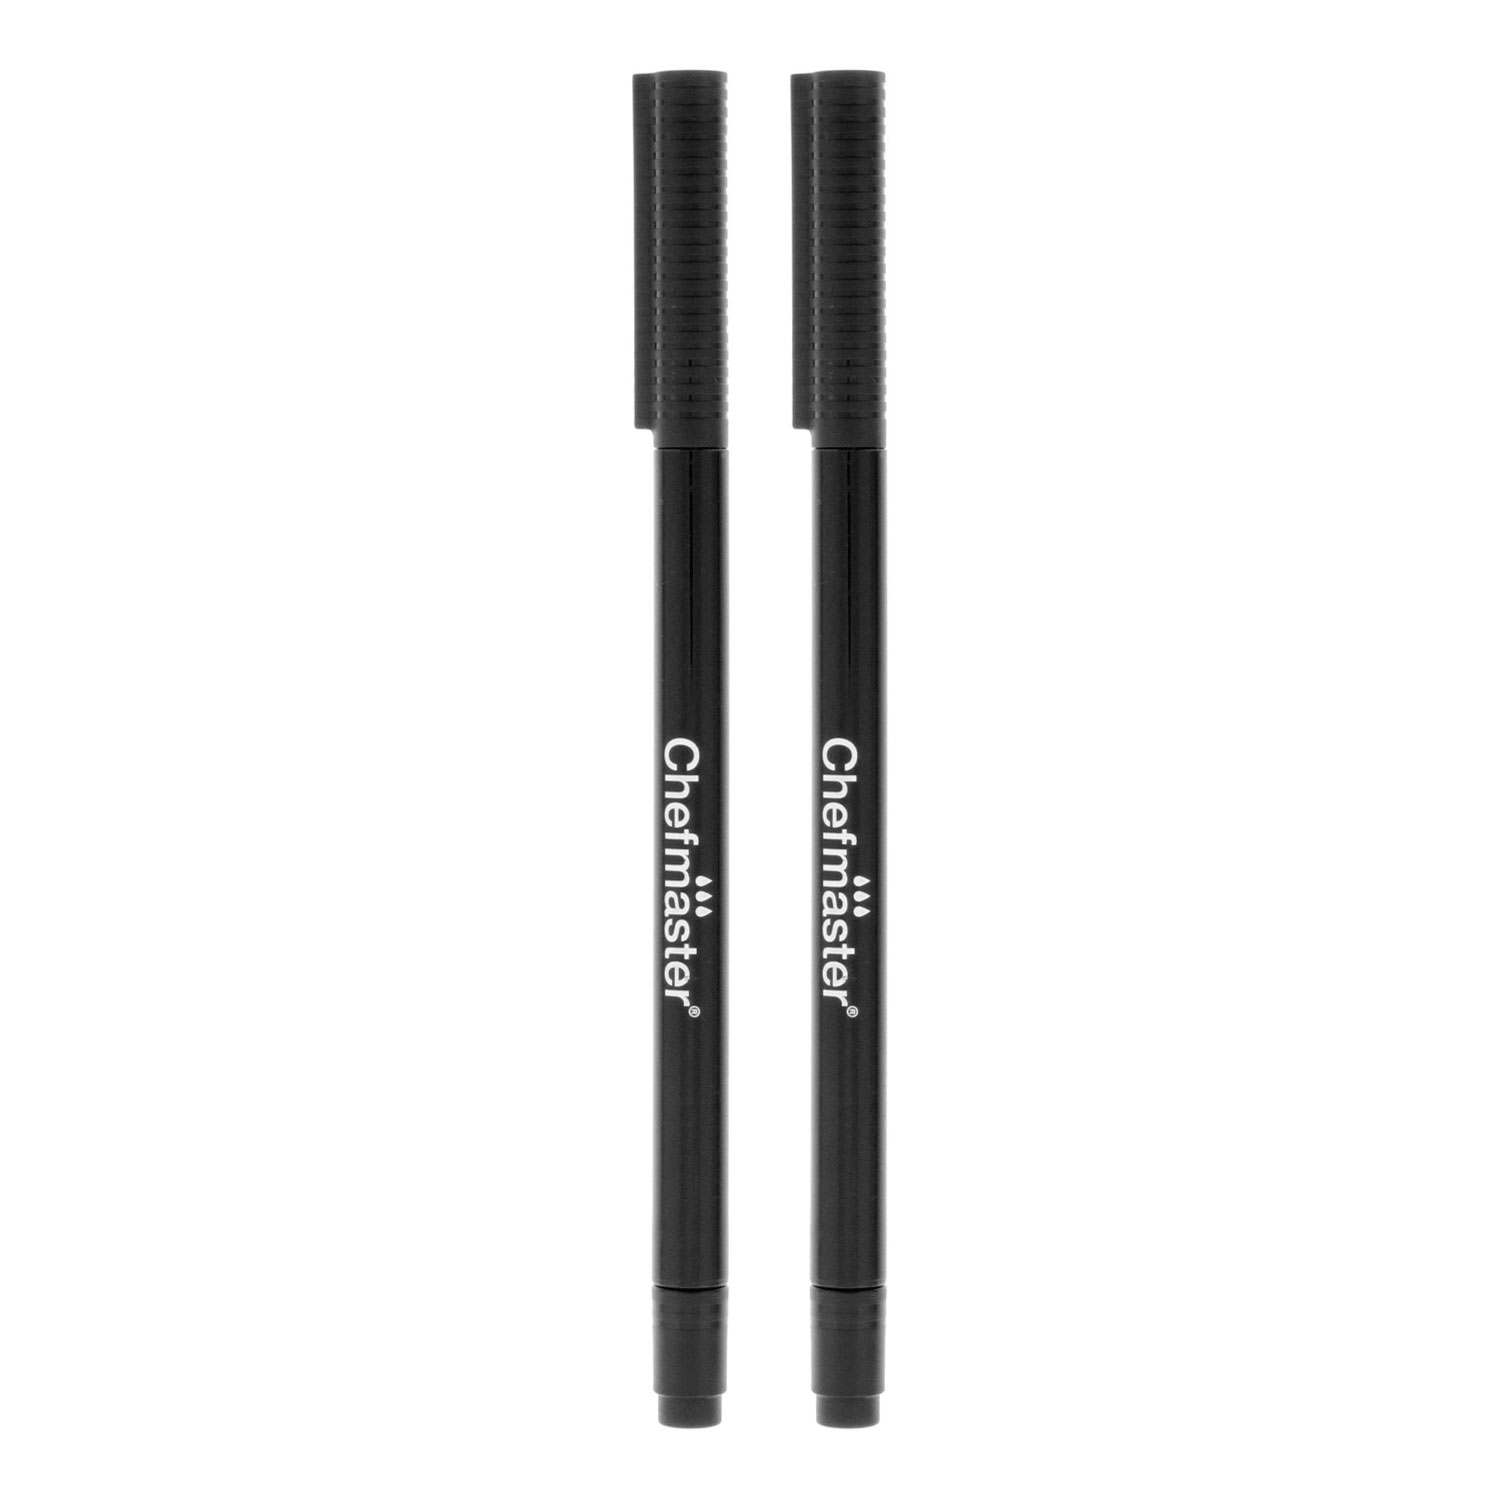 Details about 2 Black Chefmaster Edible Food Coloring Decorating Marker  Pens - Dual Tips